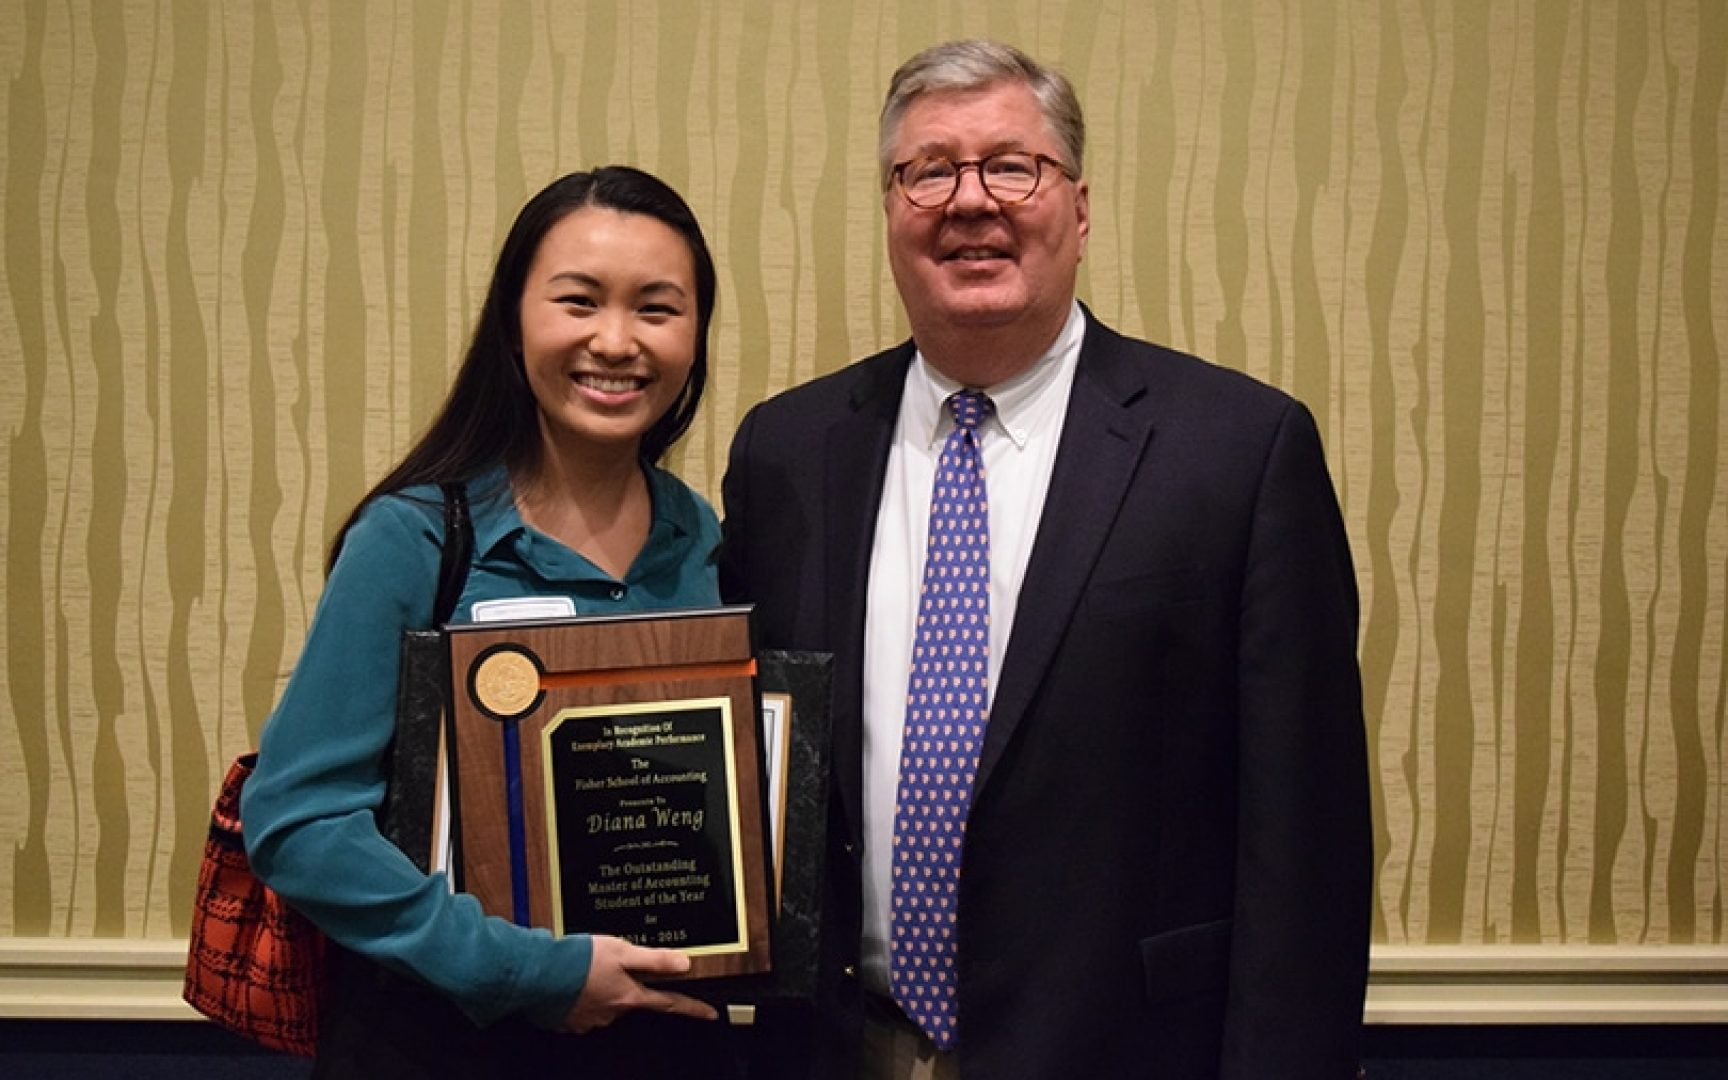 Diana Weng and Dr. Gary McGill